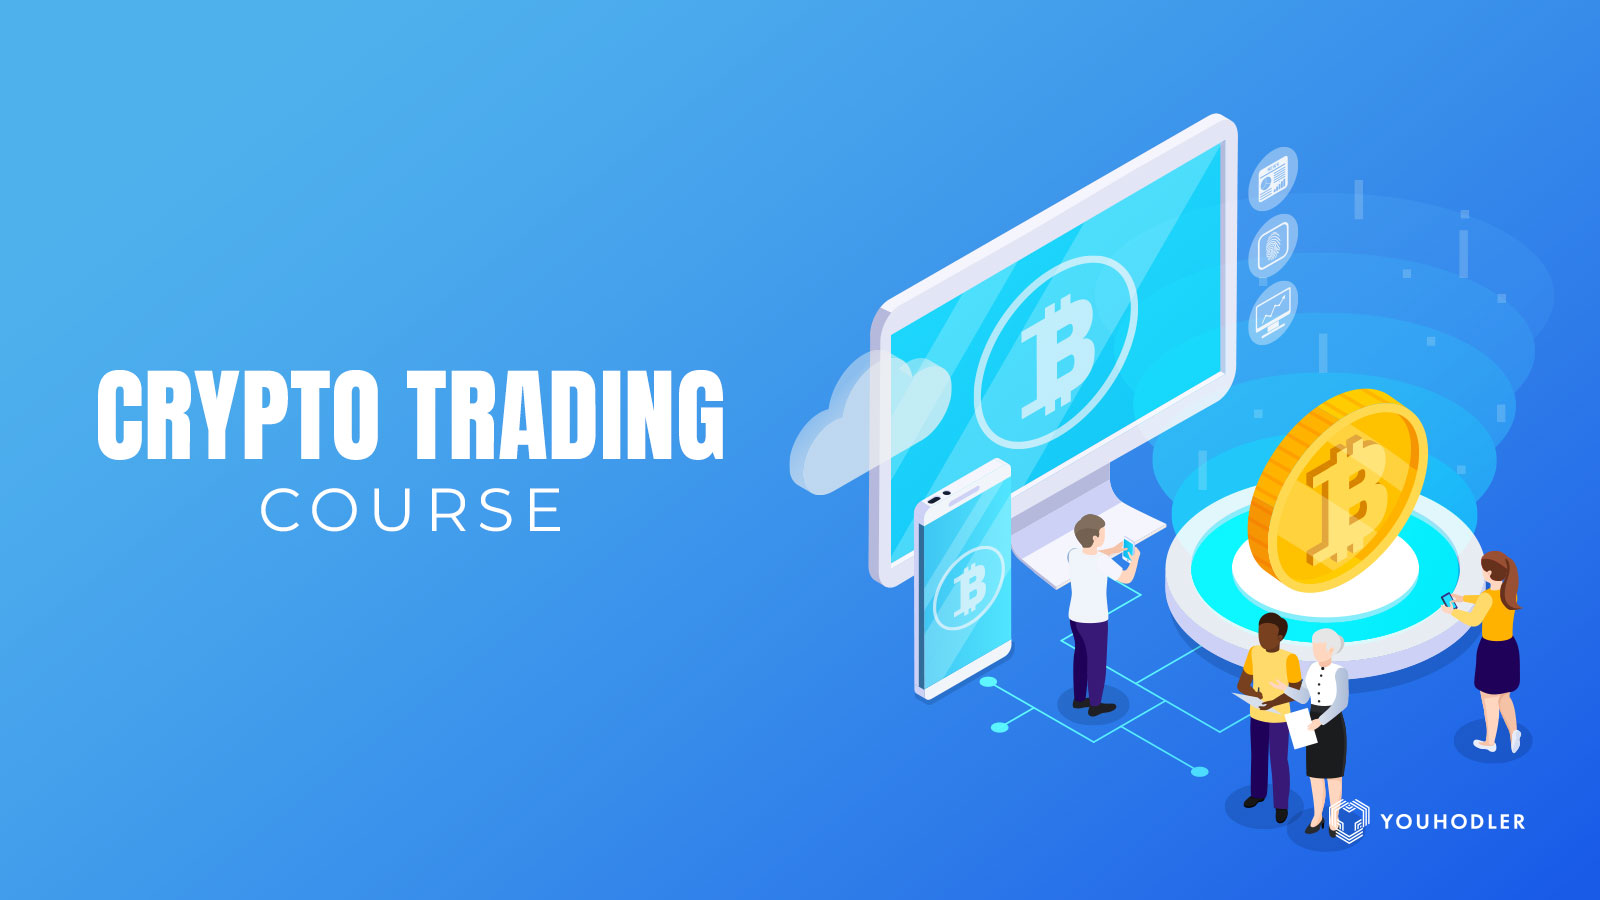 People in class ready for their cryptocurrency trading course